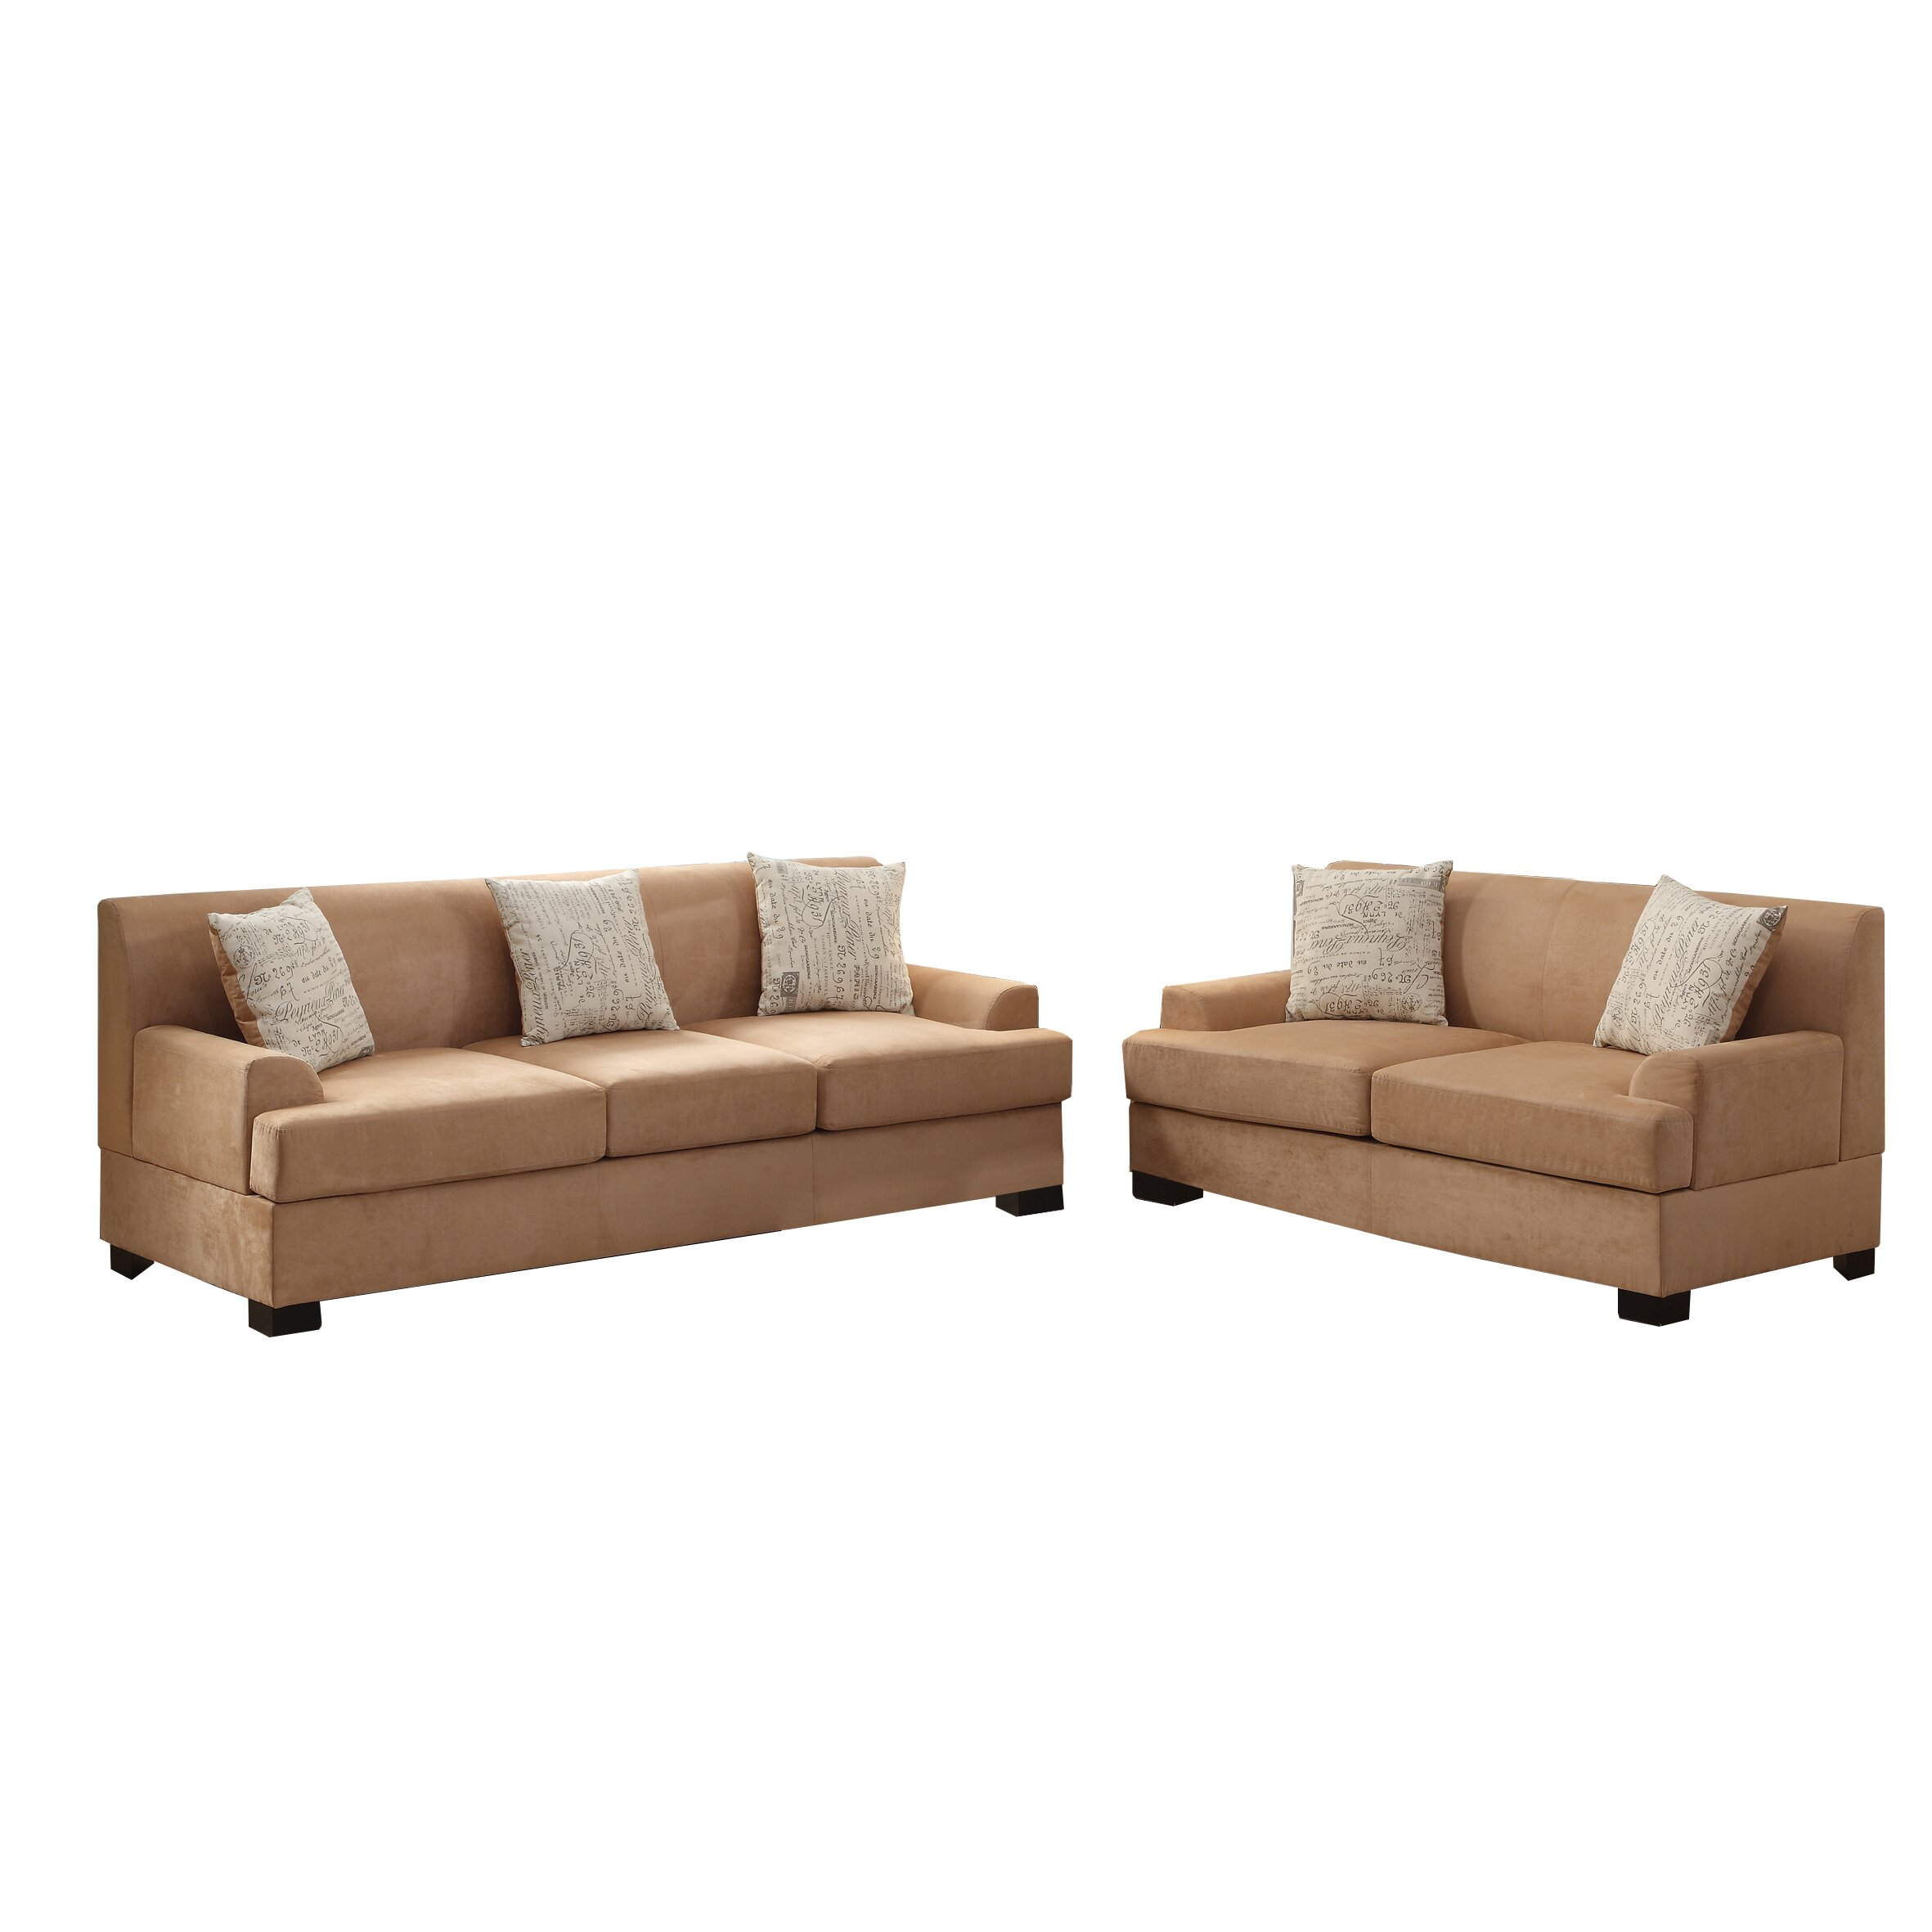 Poundex Bobkona Barrie Sofa And Loveseat Set Reviews Wayfair